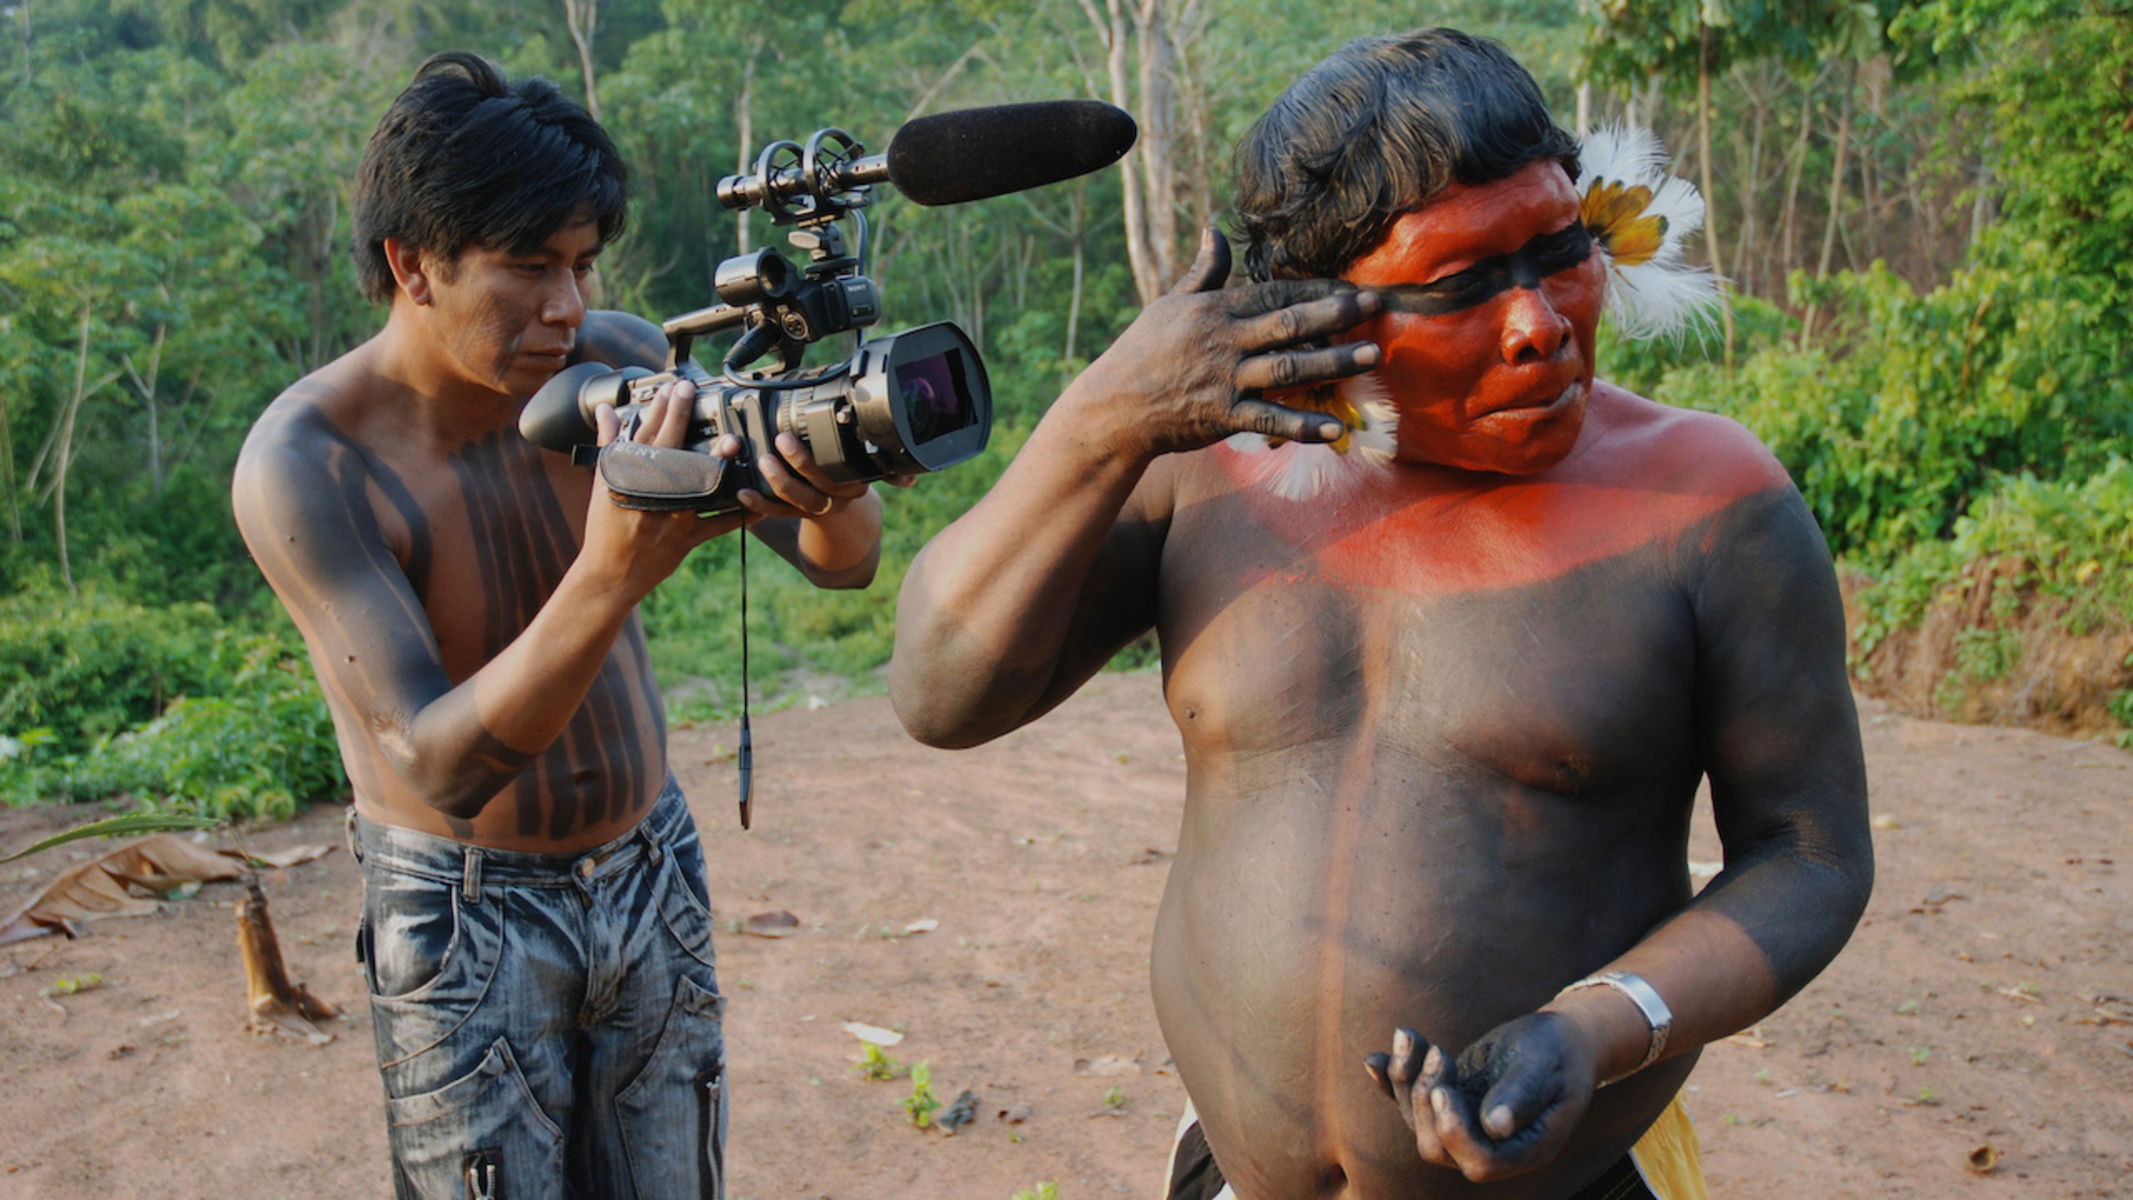 One man applies red paint to his face while another man with black paint glyphs on his chest and abdomen films closely